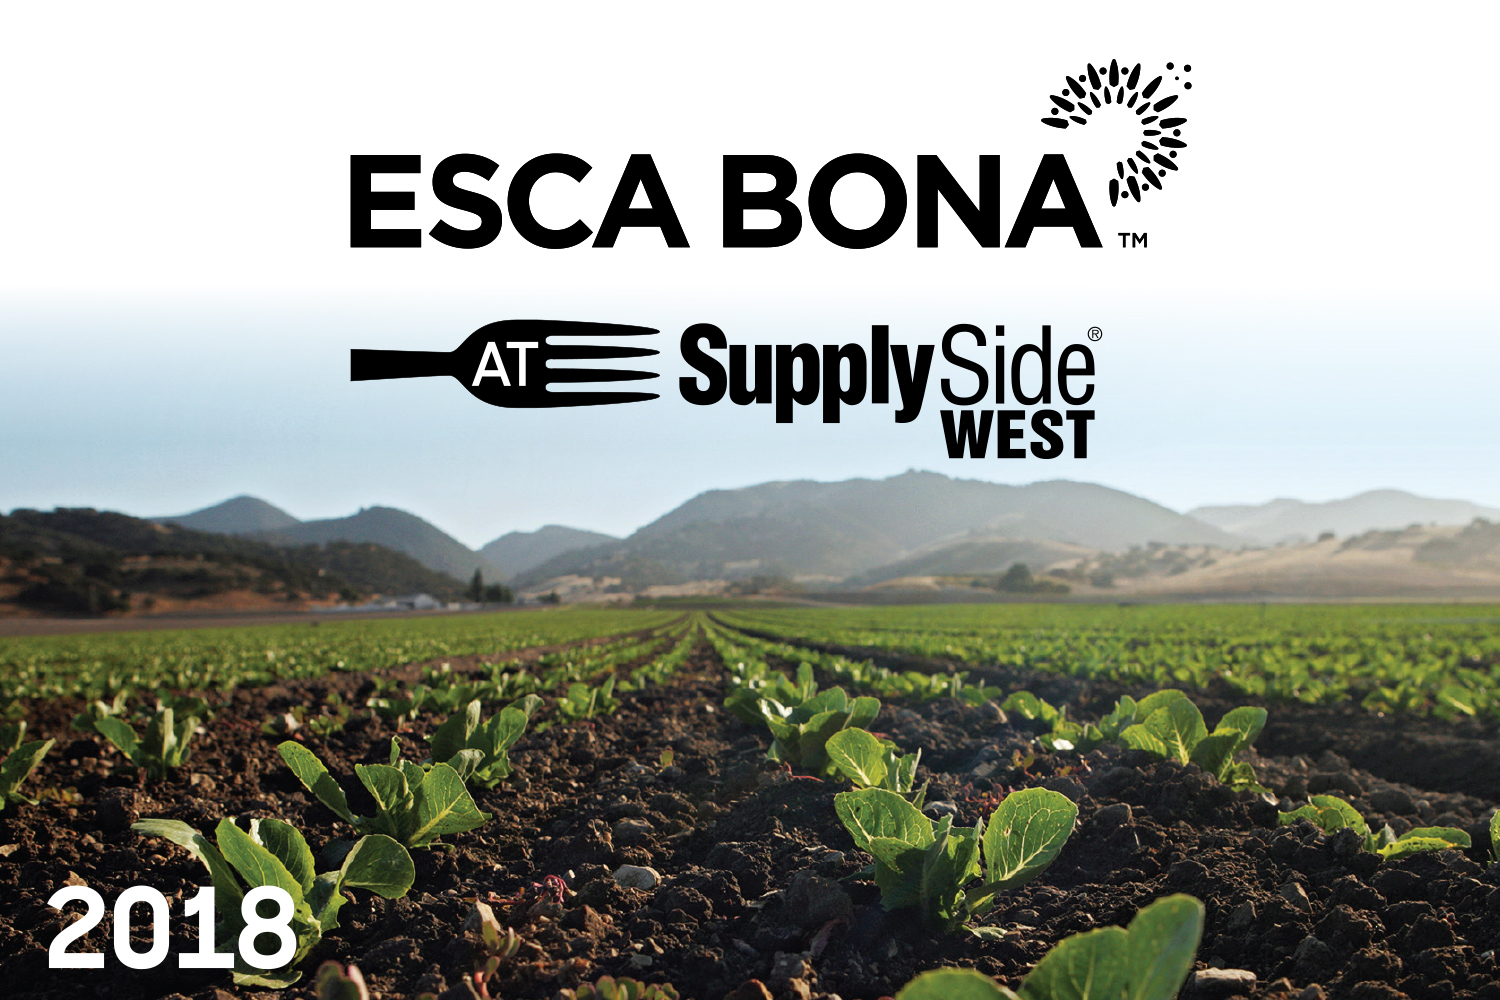 Esca Bona at SupplySide West Show Guide